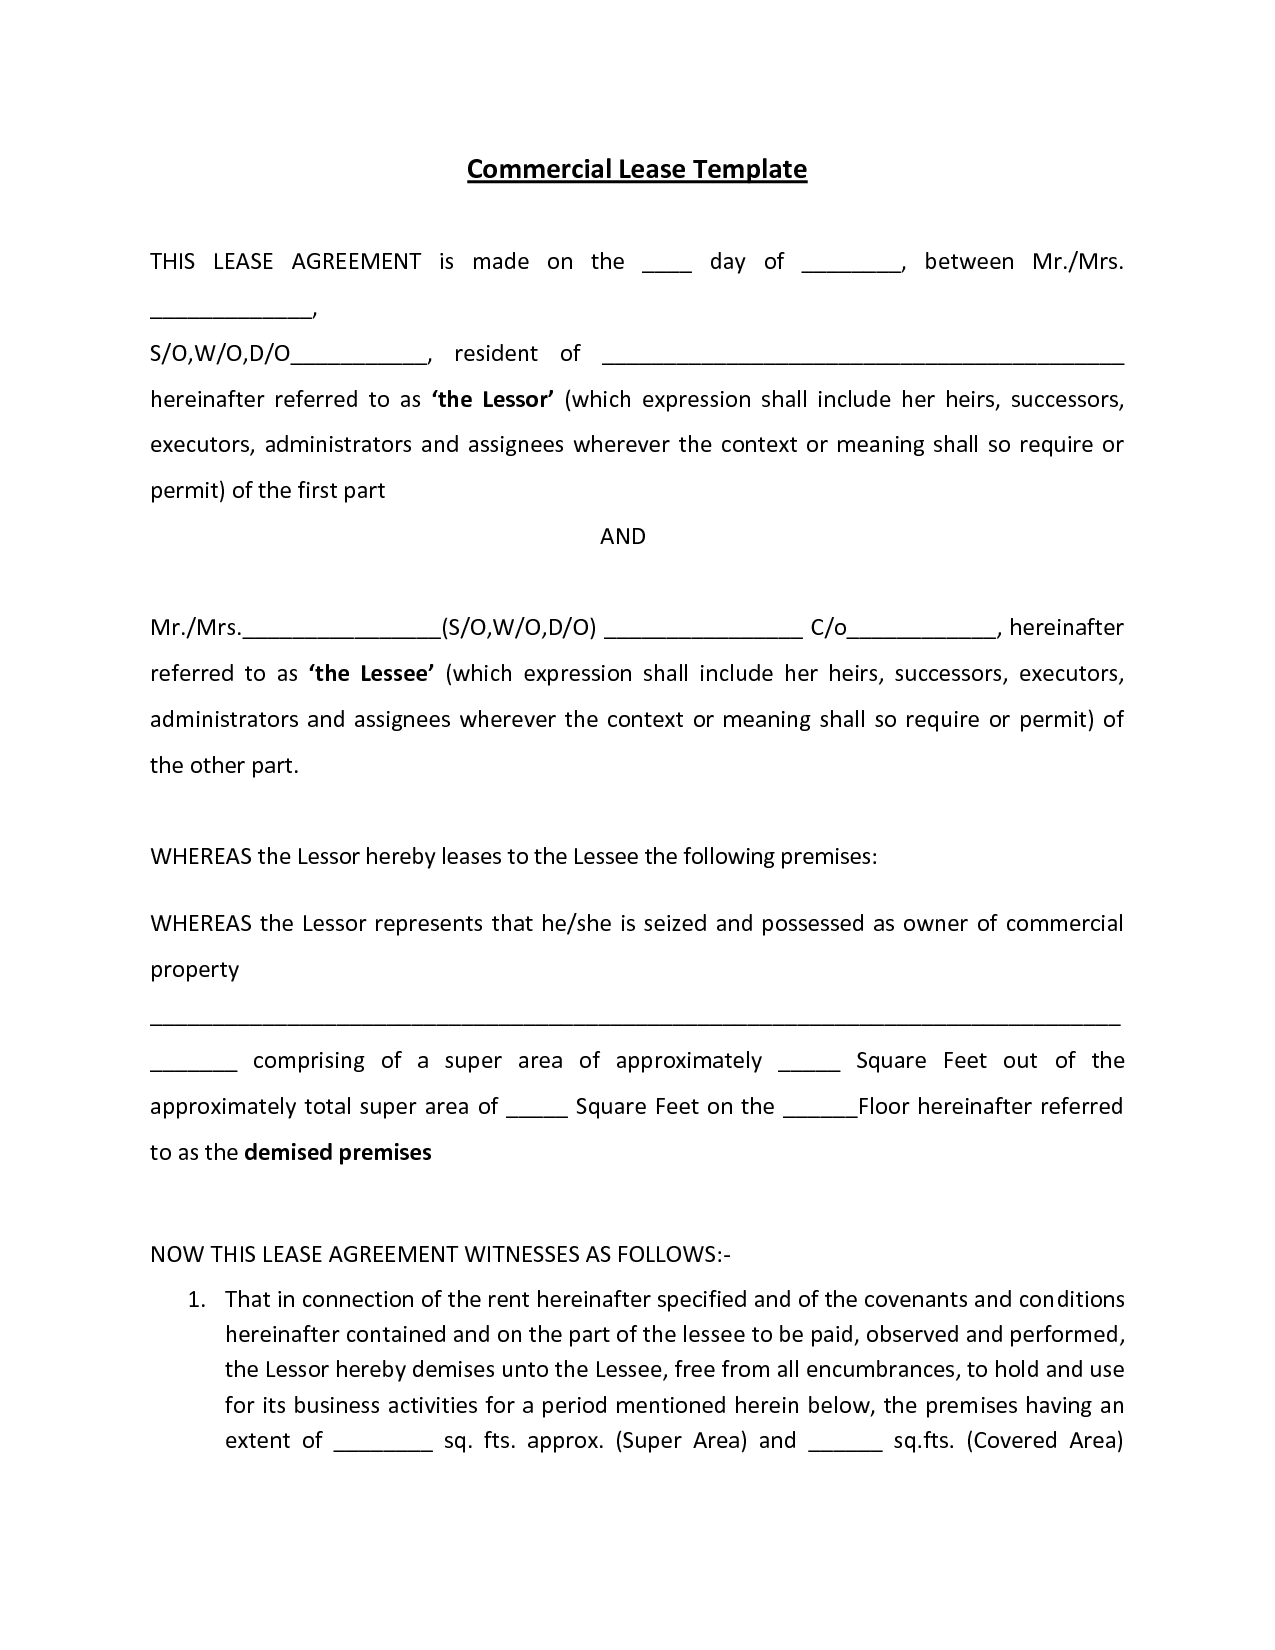 Commercial Rent Agreement Commercial Lease Agreement